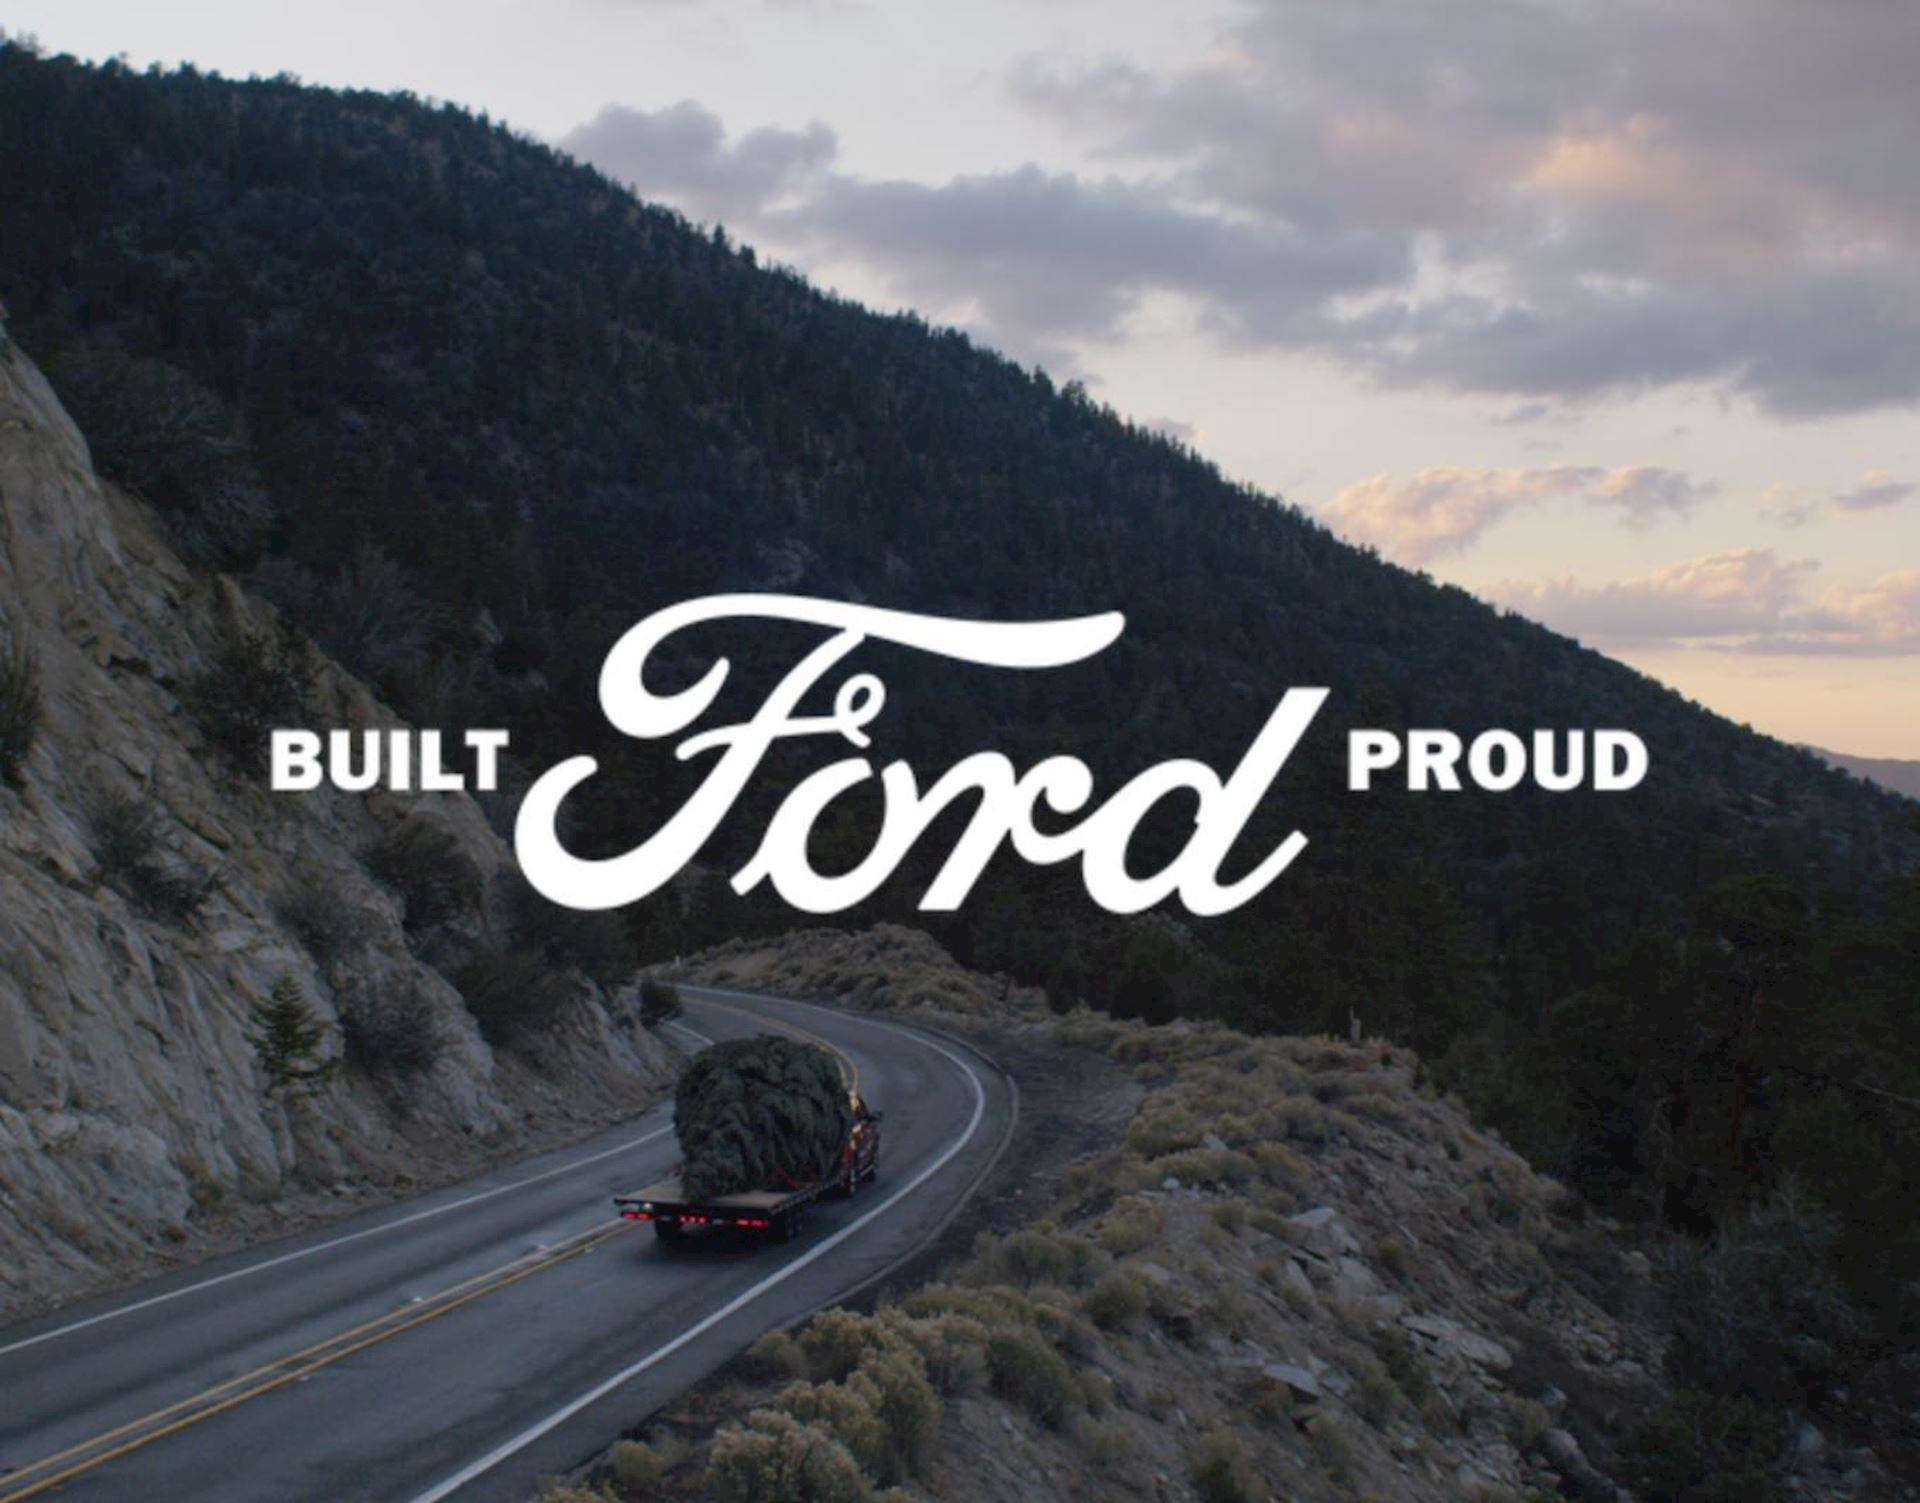 Ford is Family